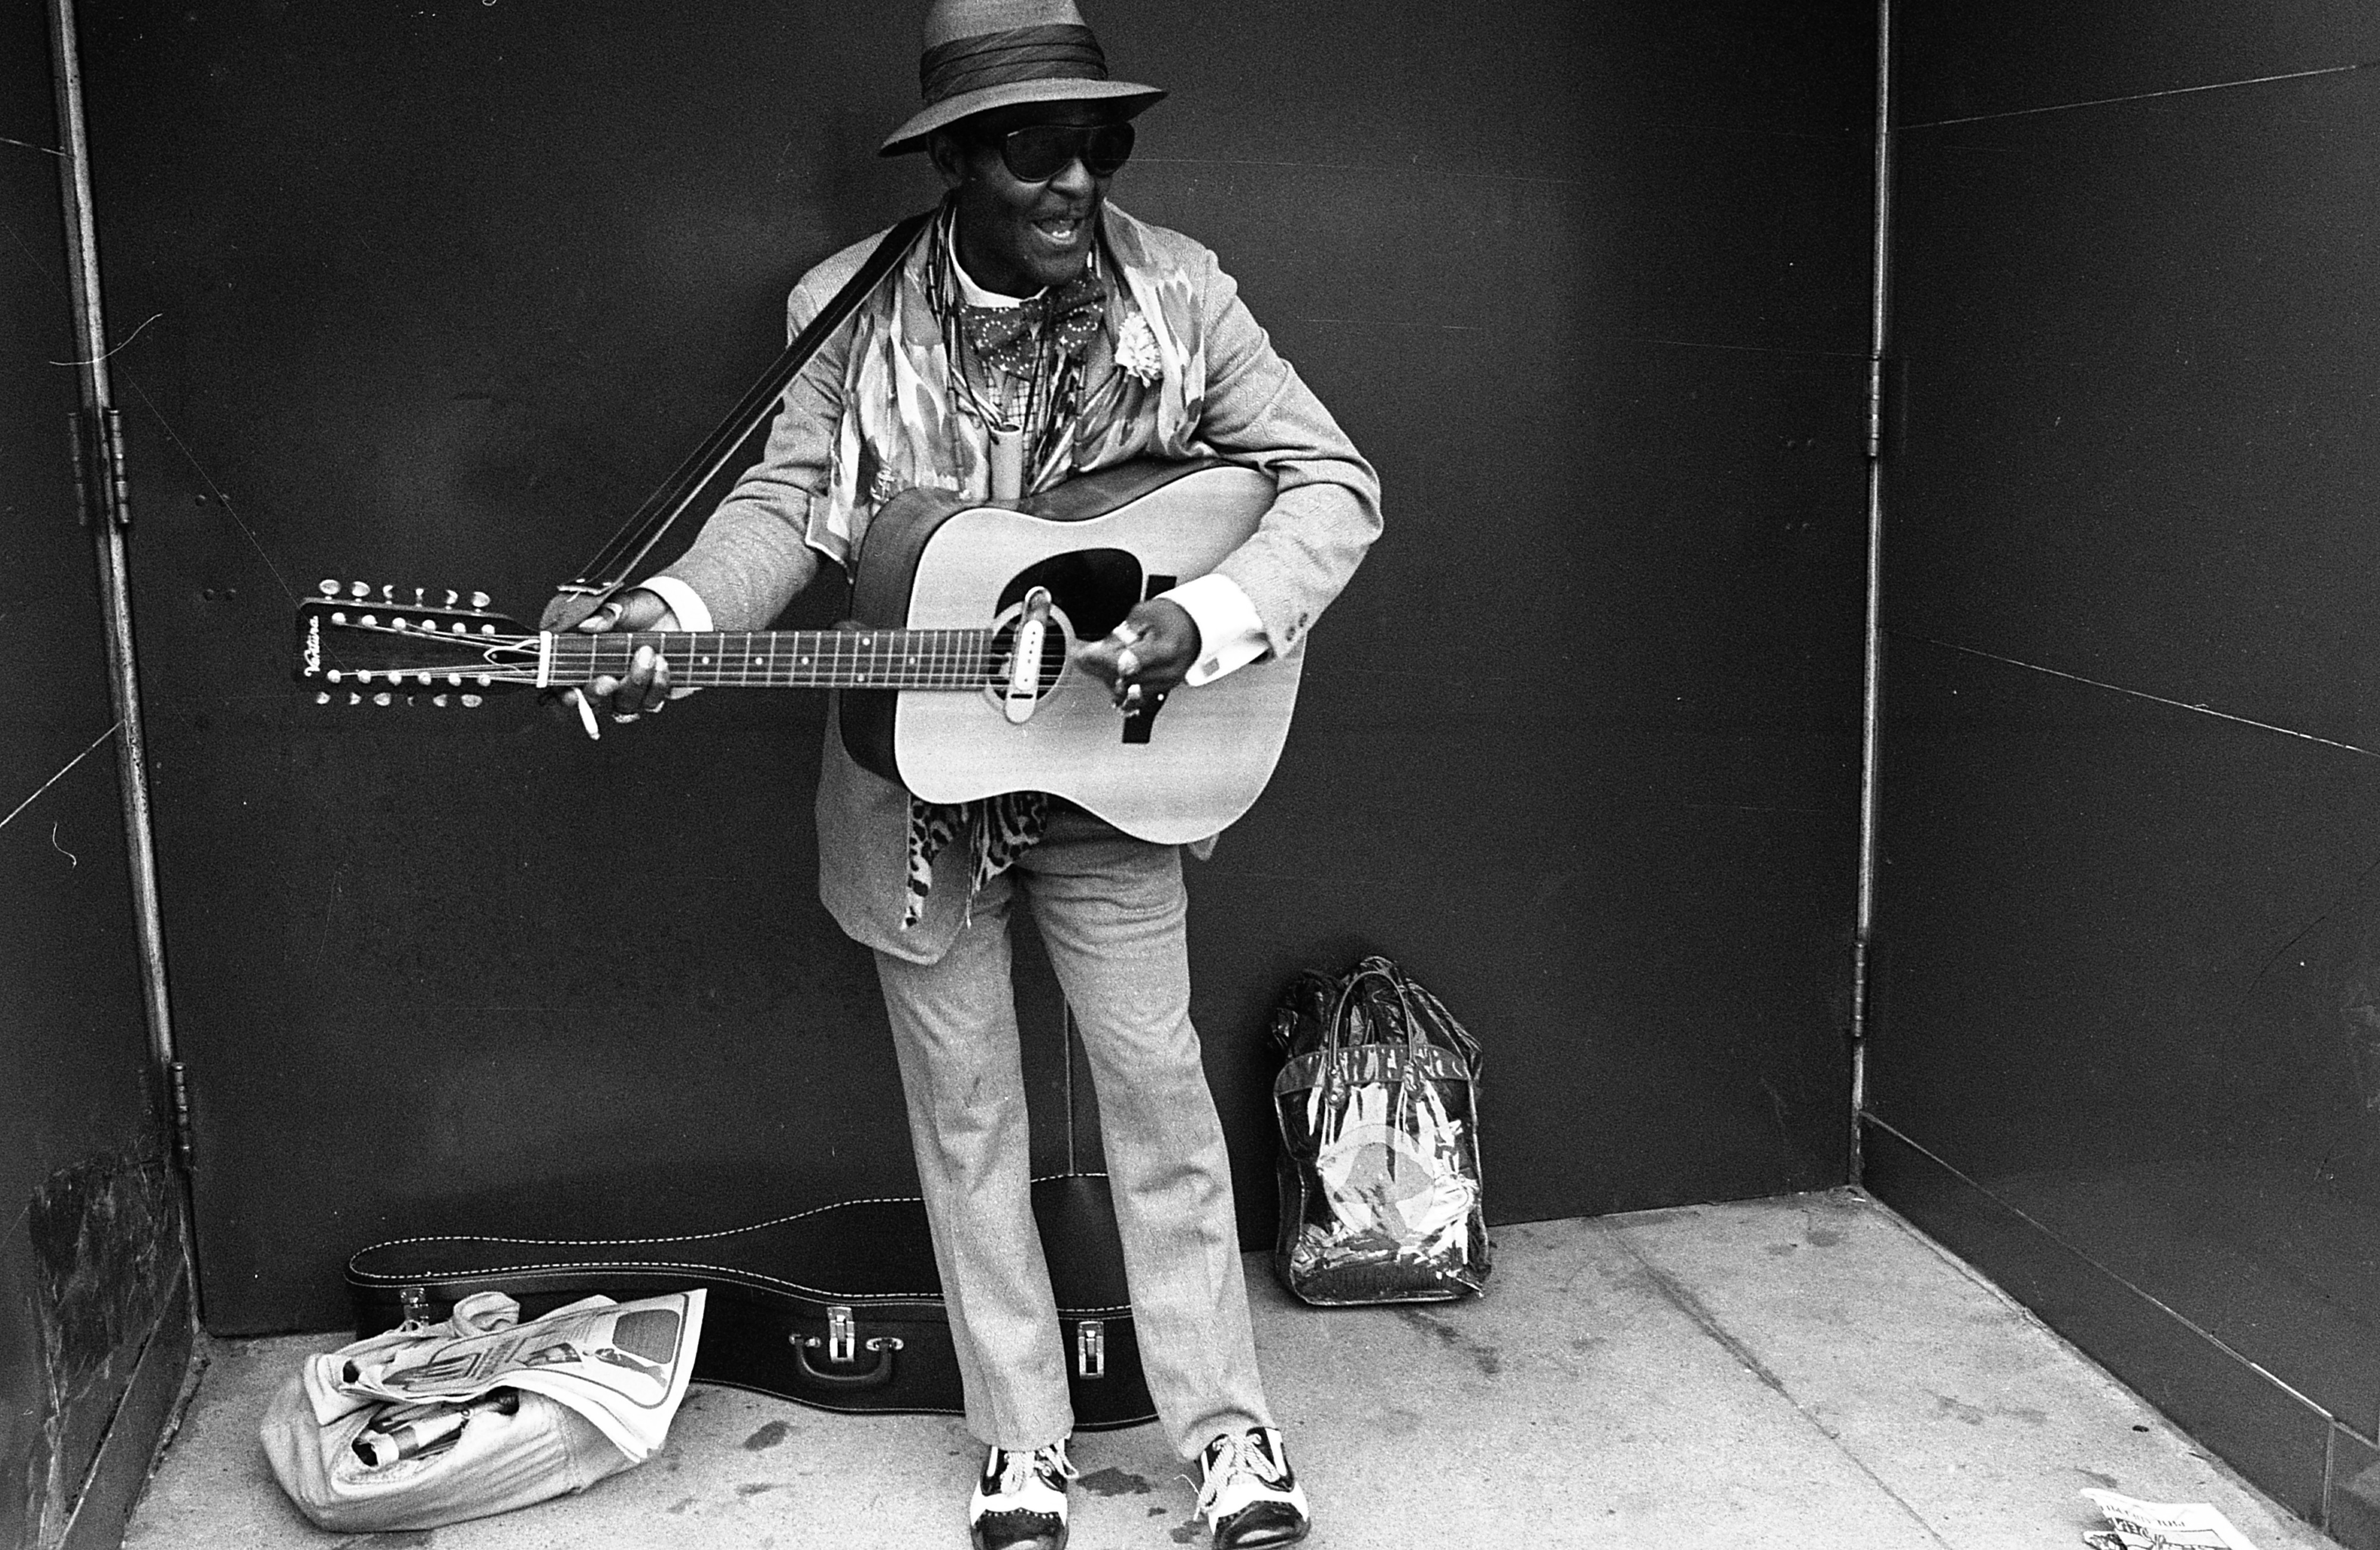 Shakey Jake Woods Performs On The Streets Of Ann Arbor, June 1976 image